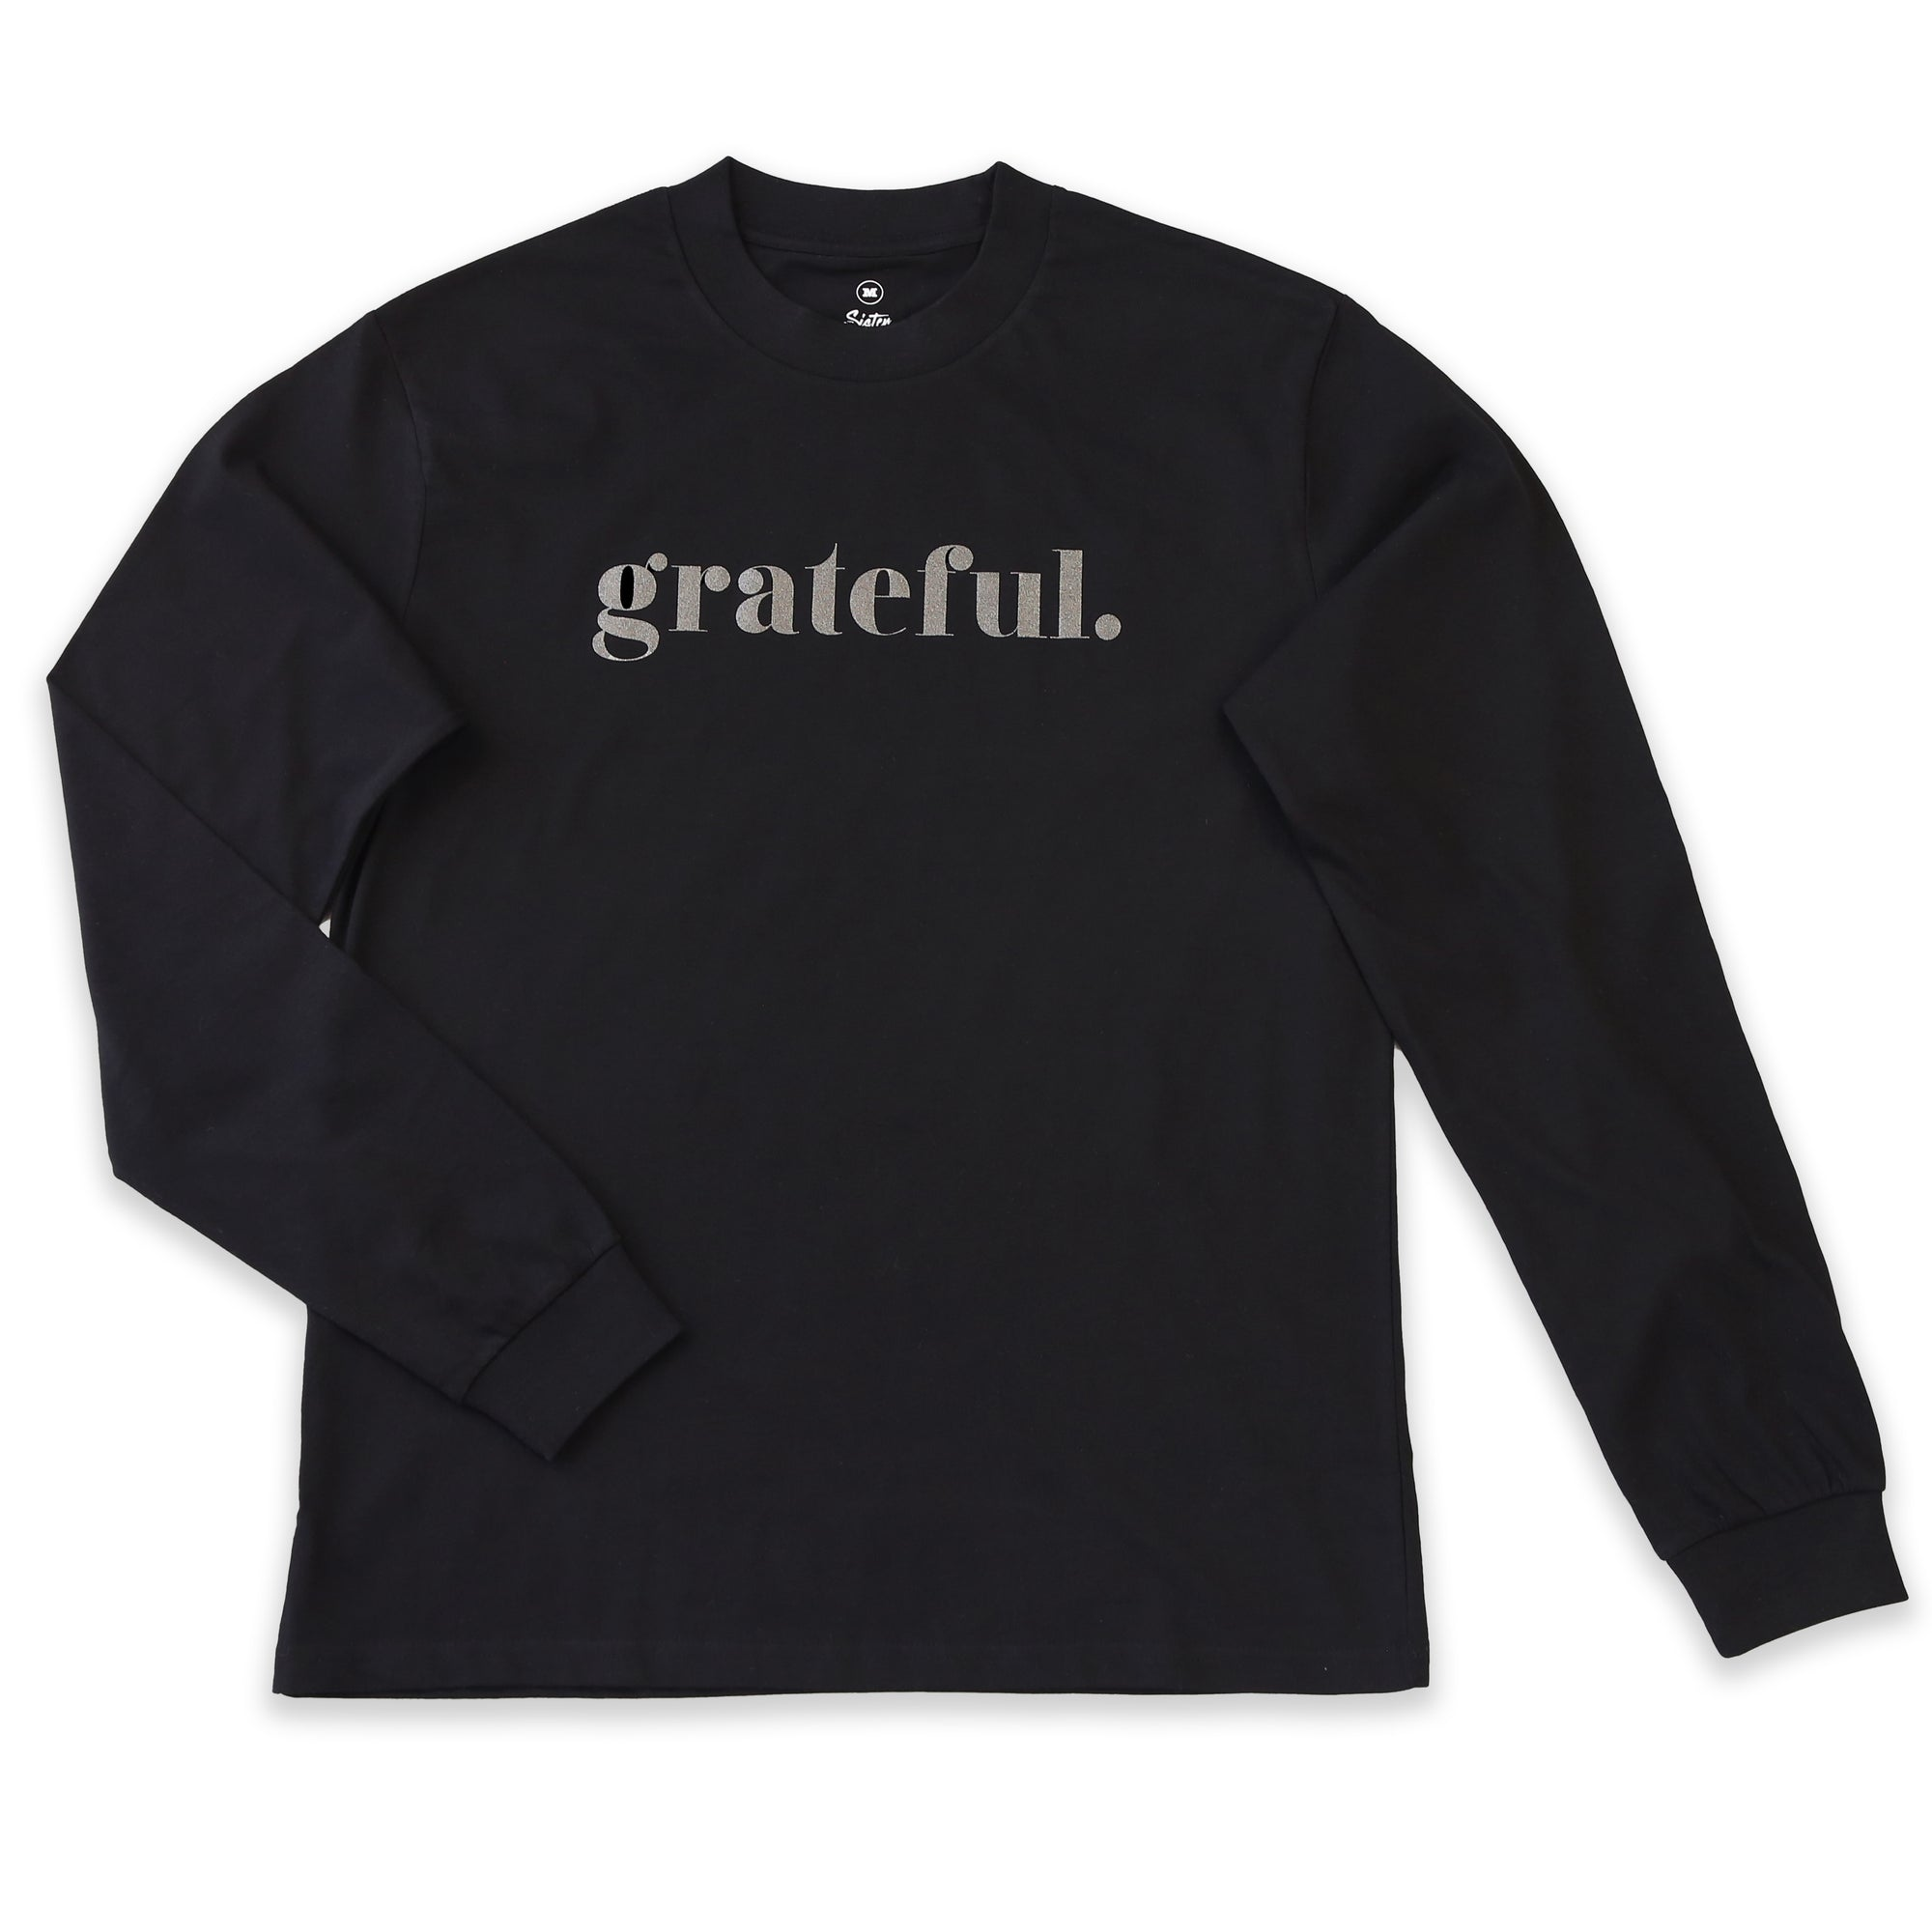 Women's Long Sleeve Crew Neck Grateful Tee. T-shirt in Black